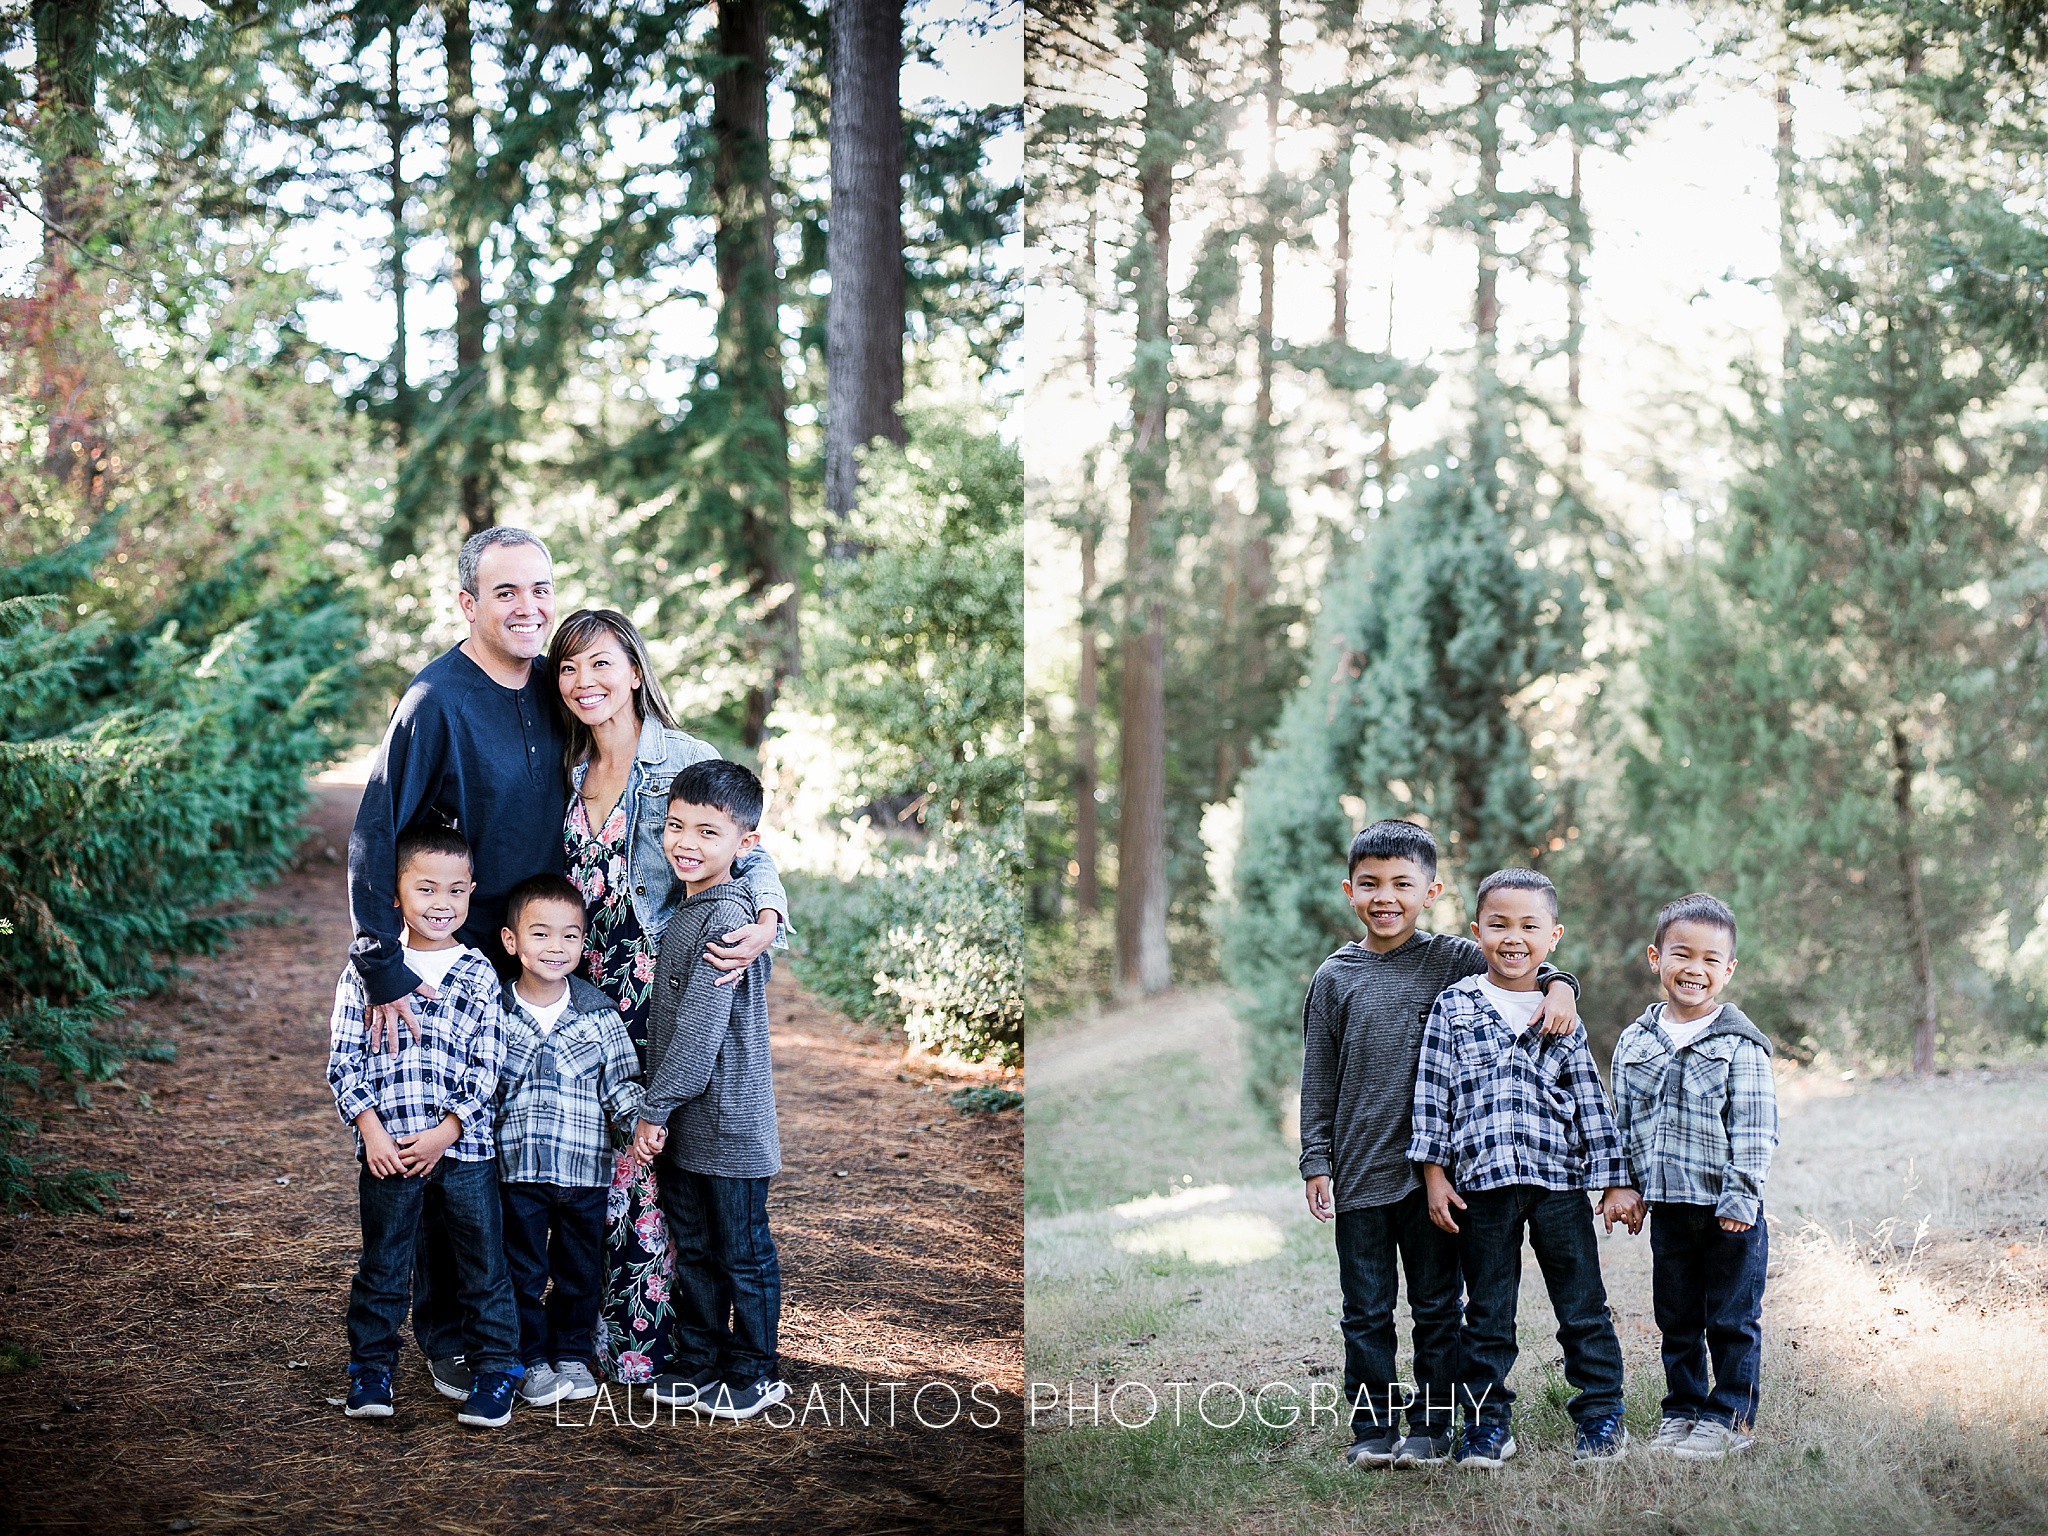 Laura Santos Photography Portland Oregon Family Photographer_0745.jpg